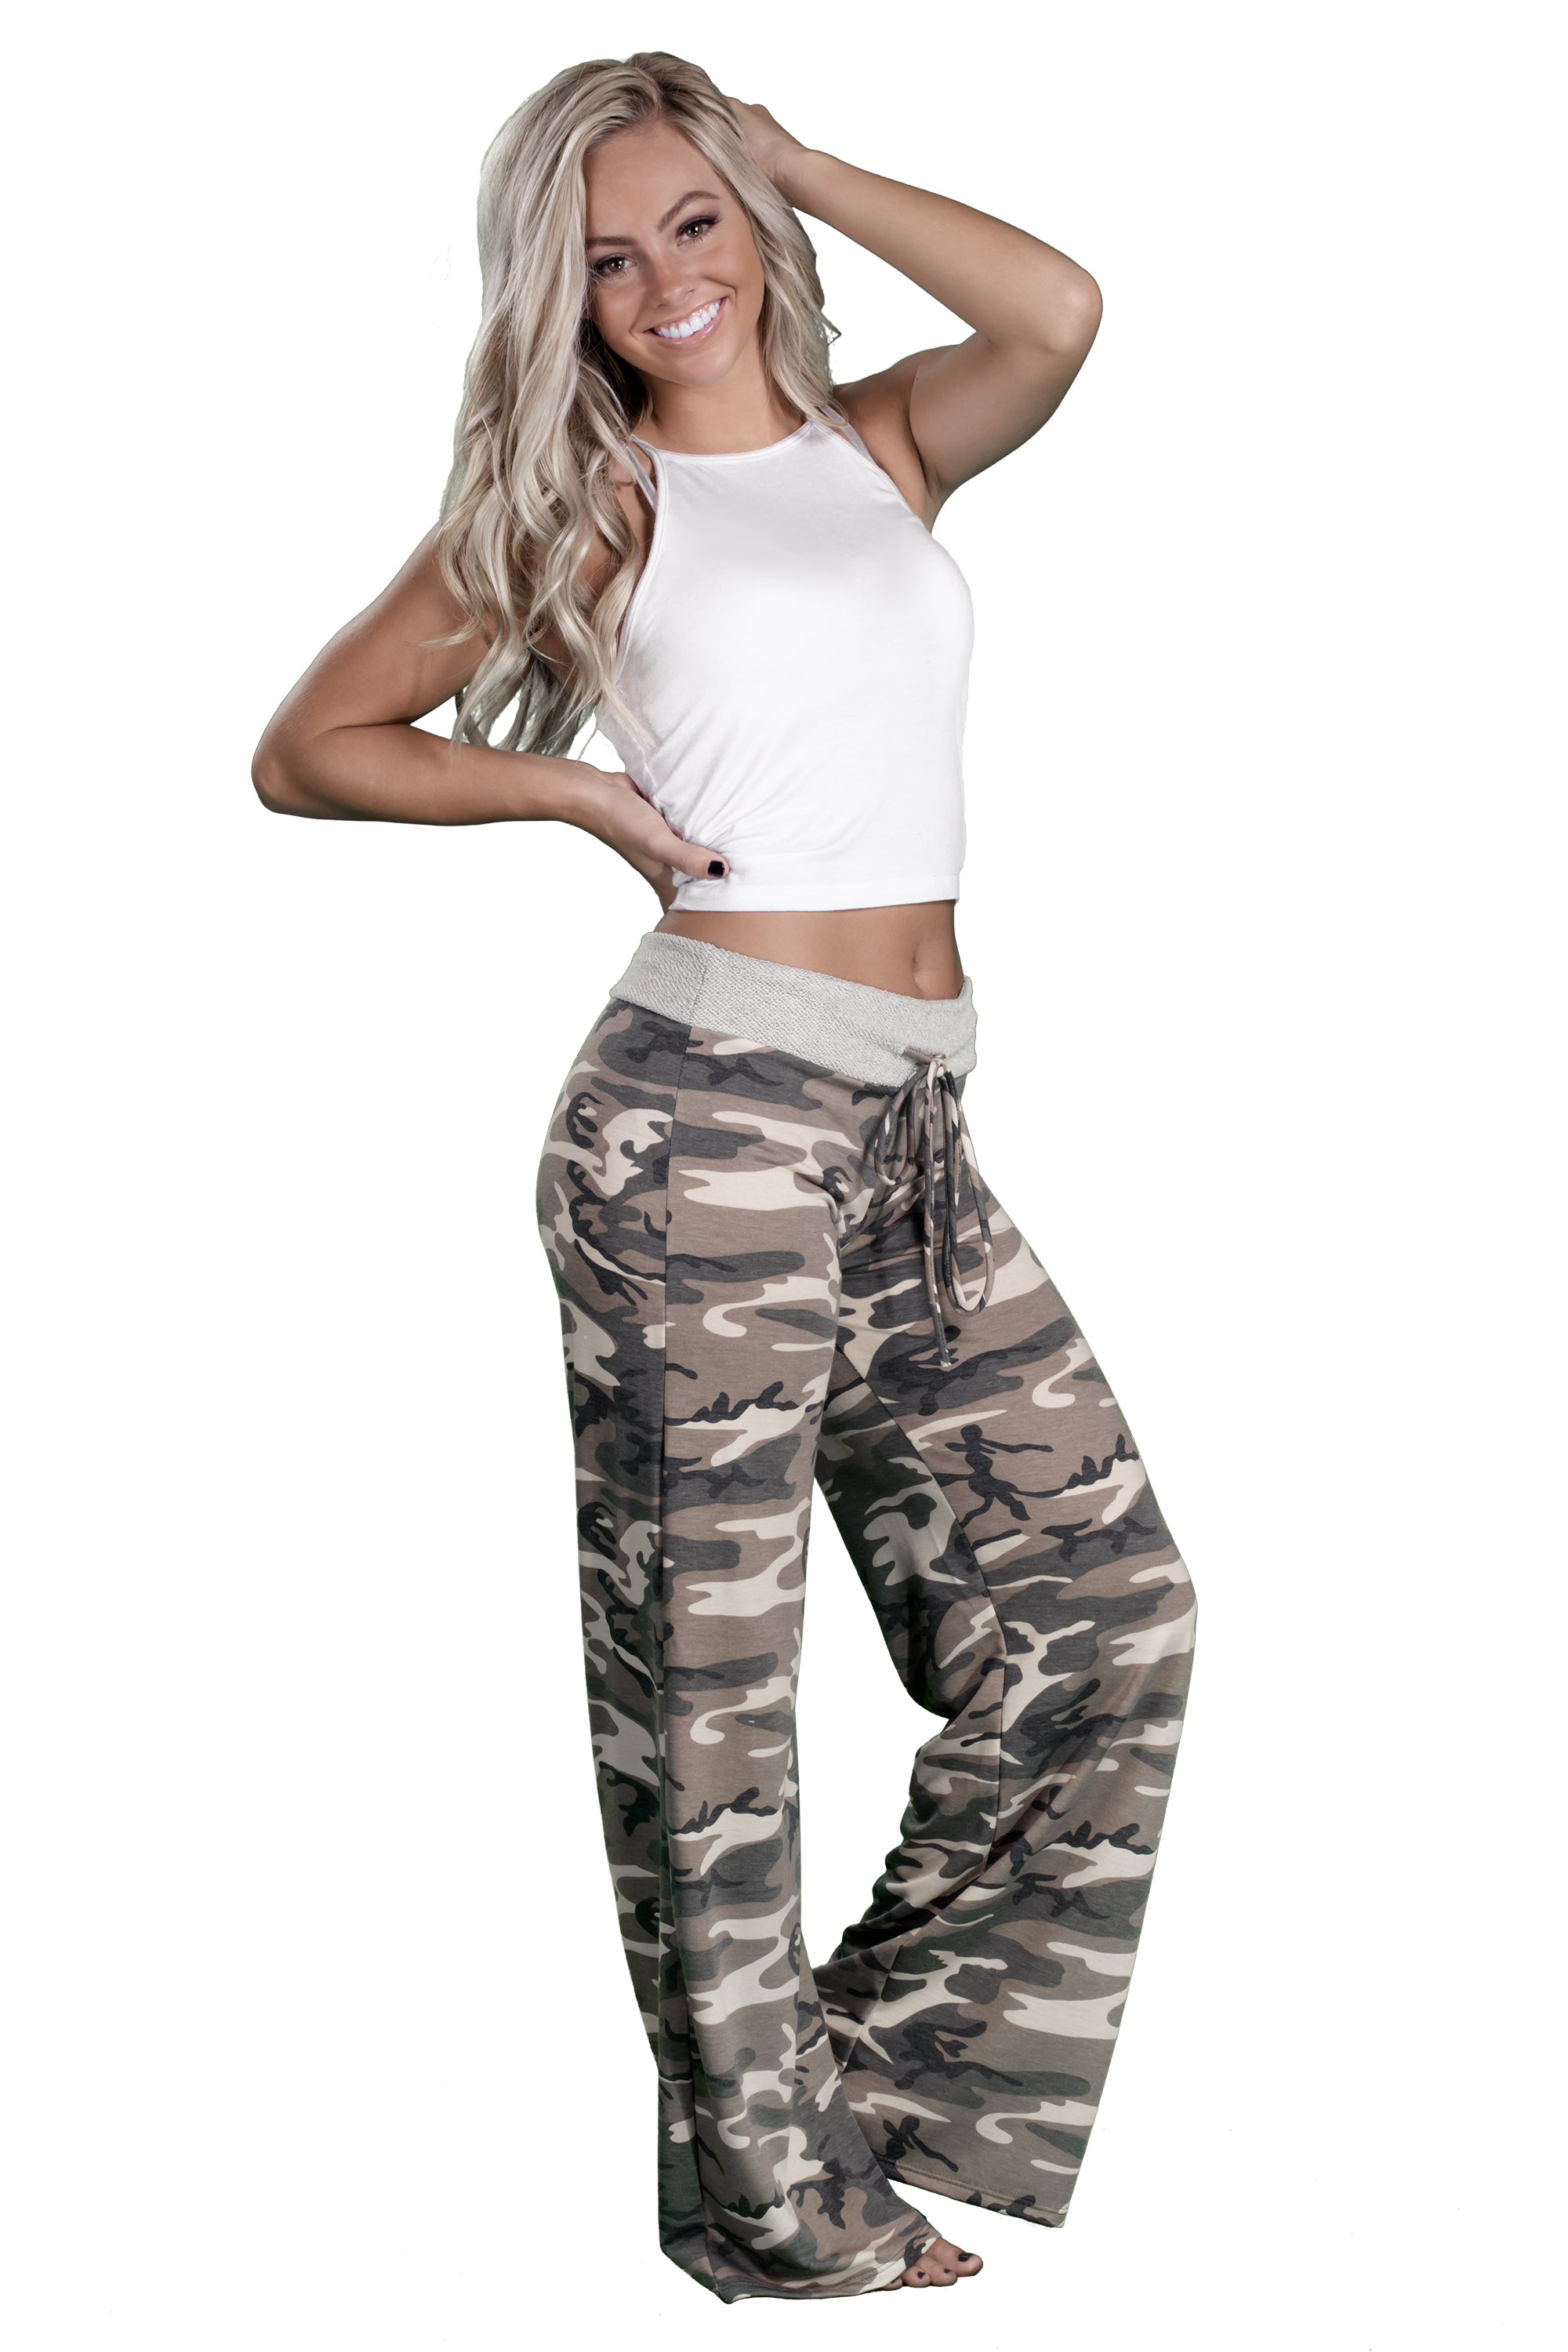 a333186343385 Women's Cant See Me Camo Lounge Pajama Pants | Inspire L' Amour